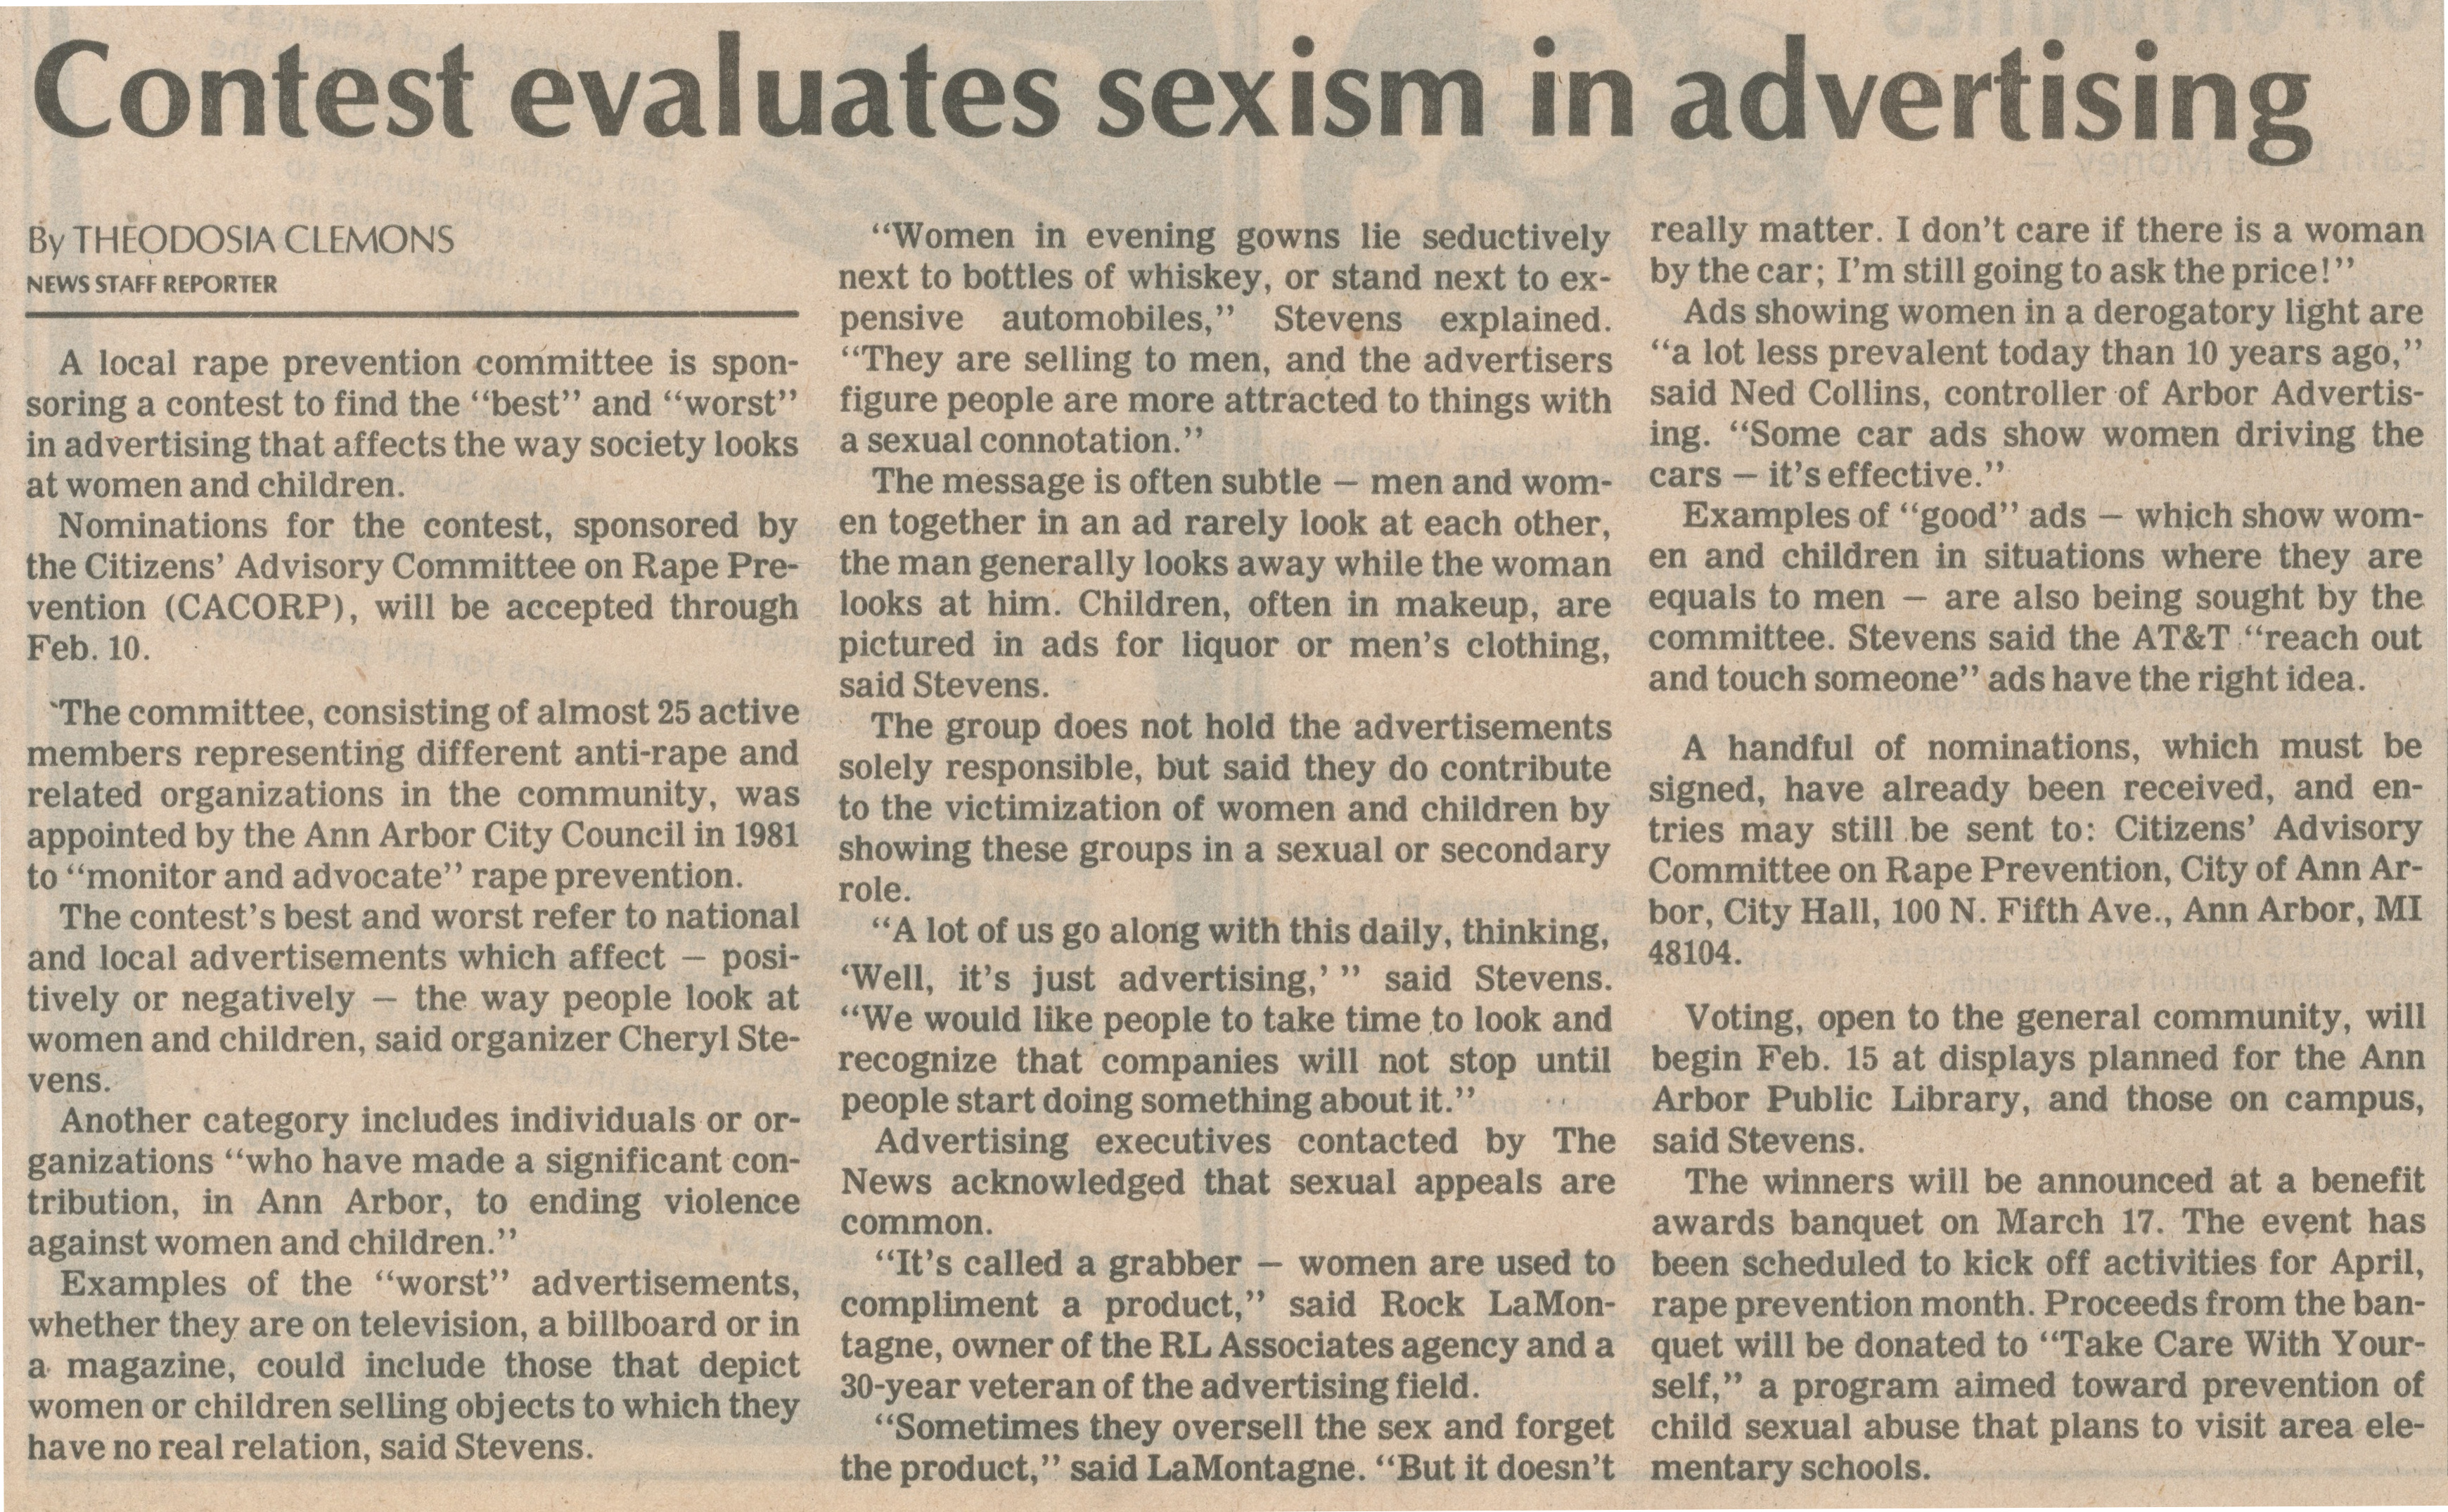 Contest Evaluates Sexism In Advertising image